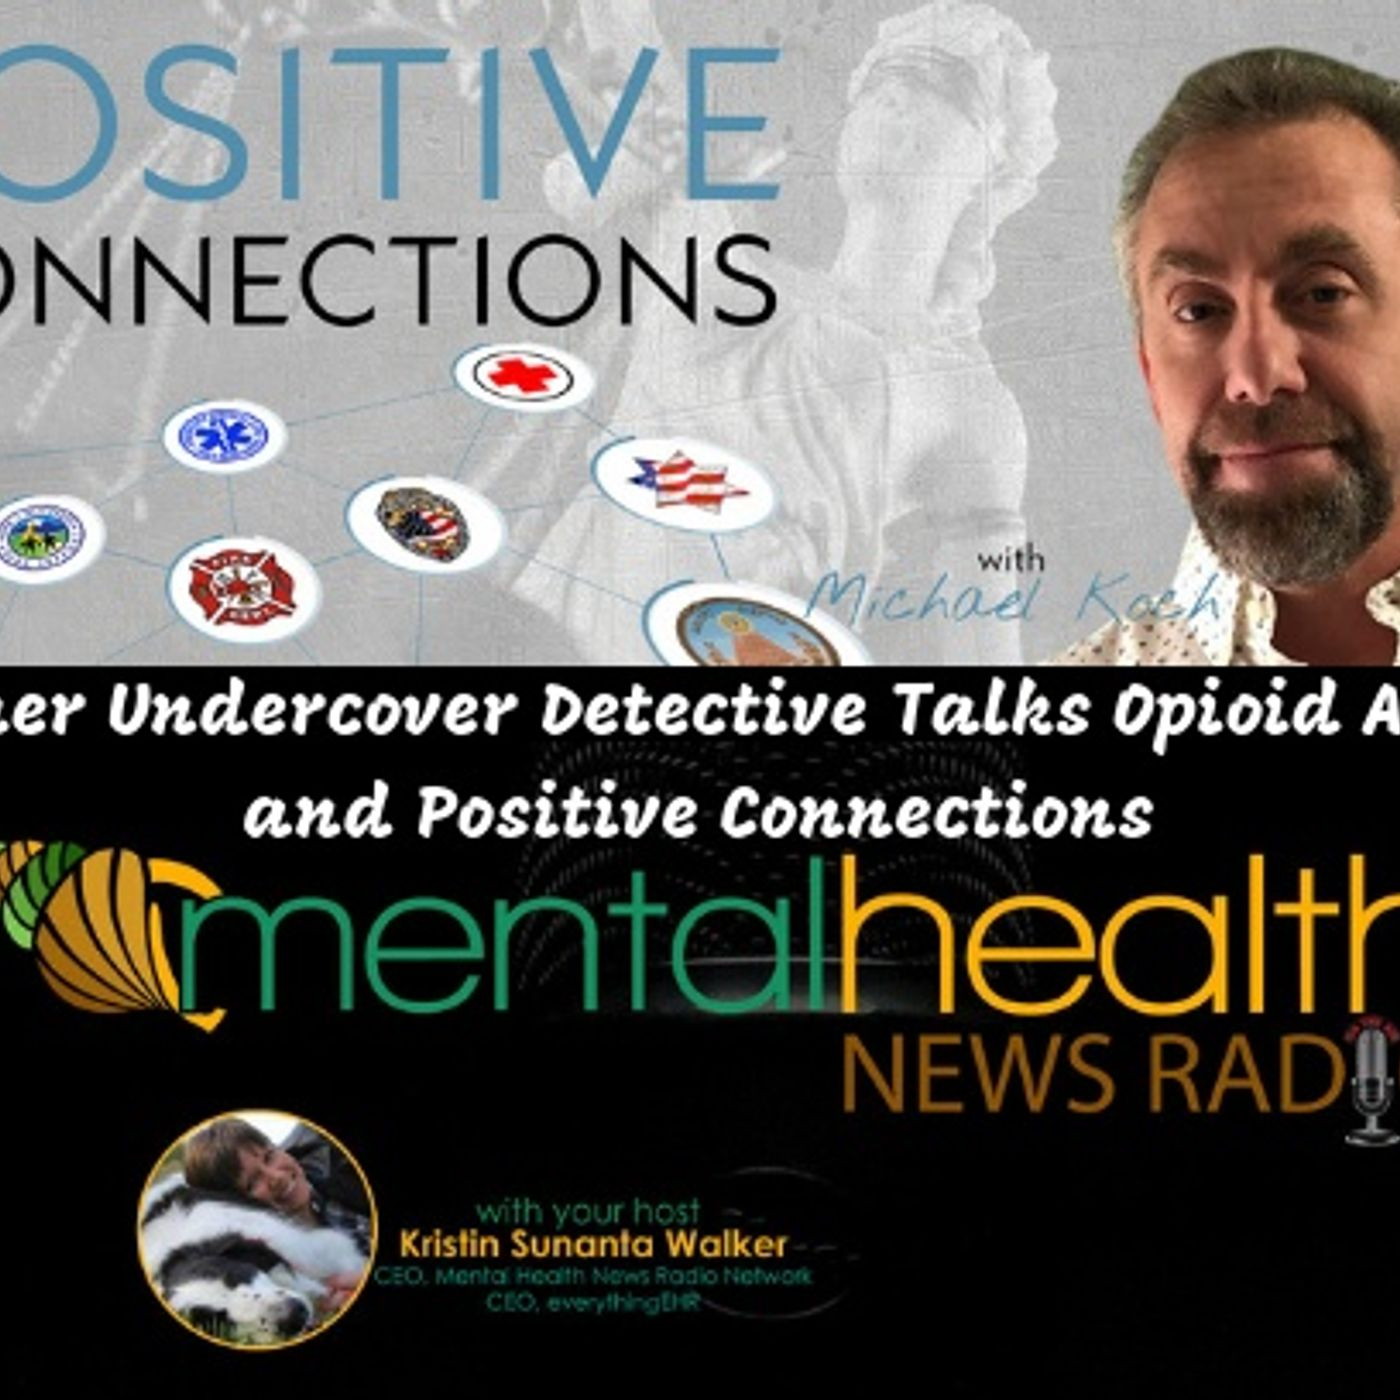 Mental Health News Radio - Former Undercover Detective Talks Opioid Abuse and Positive Connections